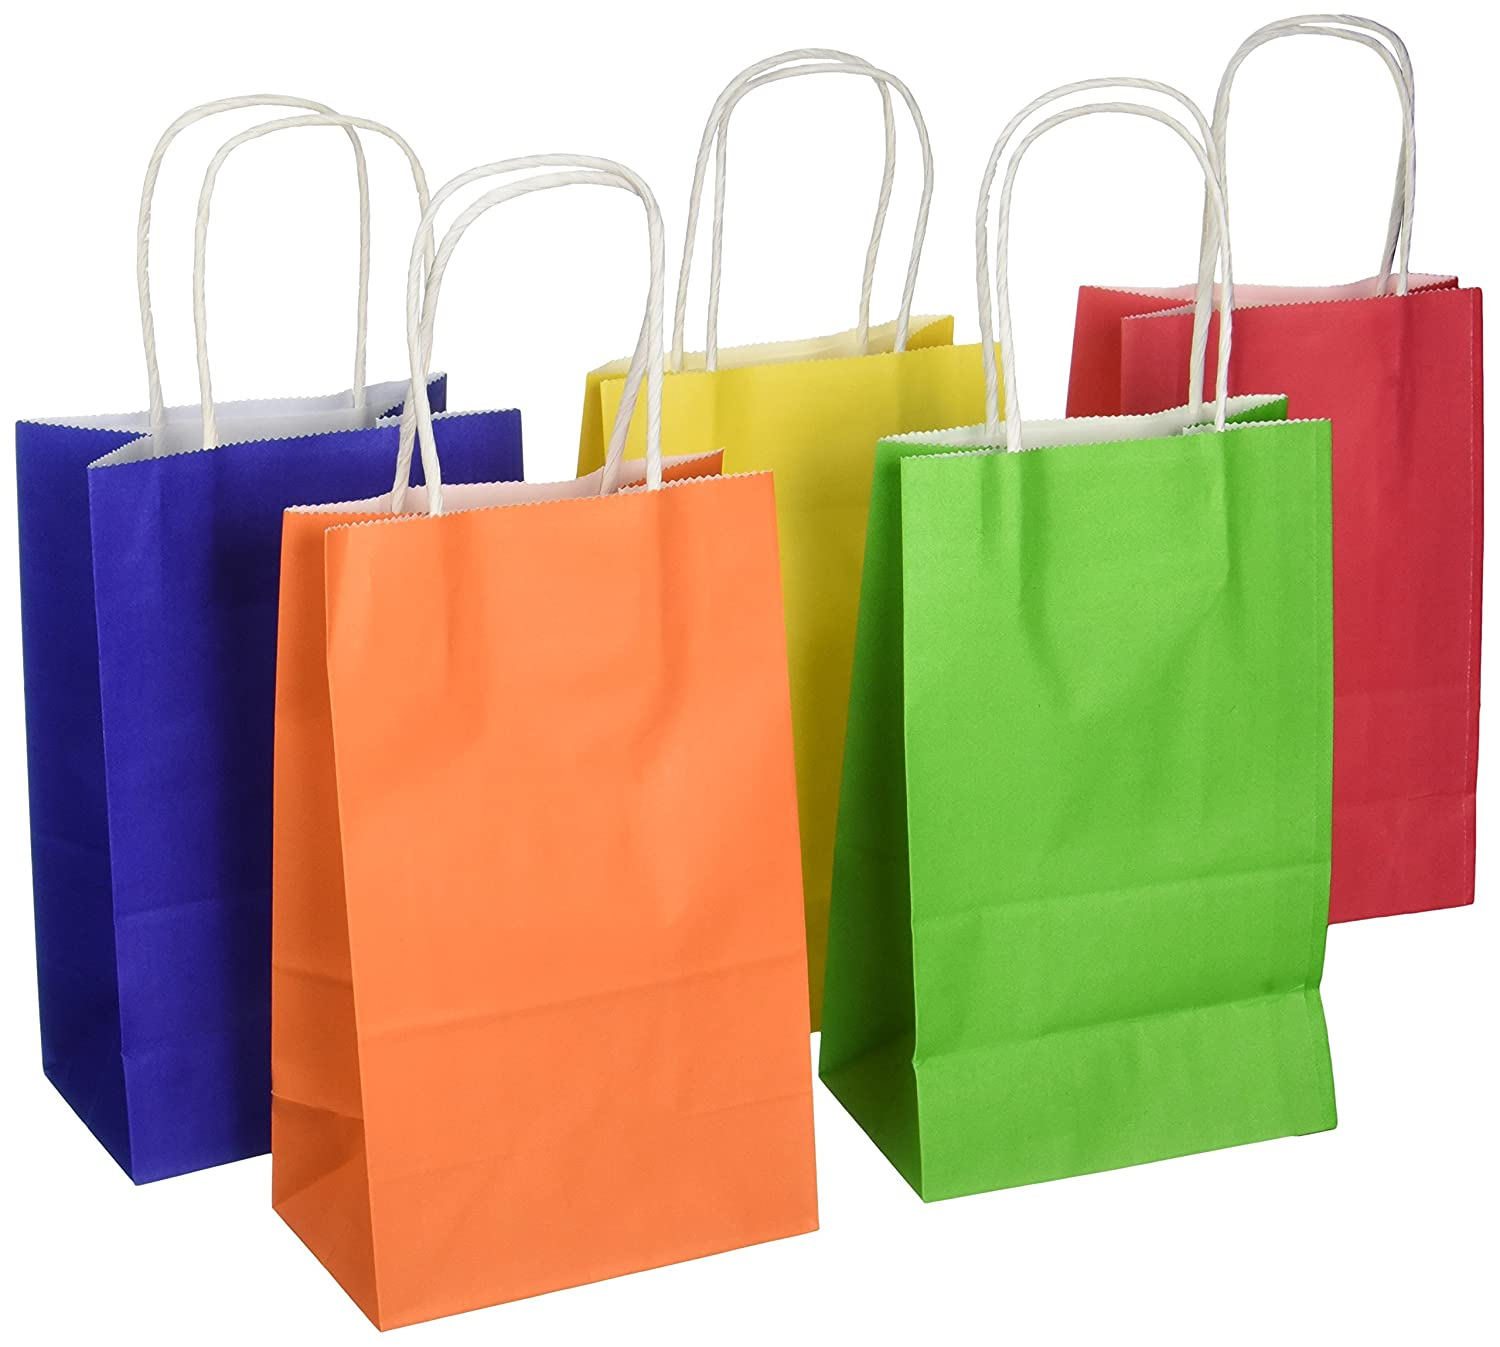 Darice Paper Bags, 3.25 by 5.25 by 8.375-Inch, Assorted Primary ...